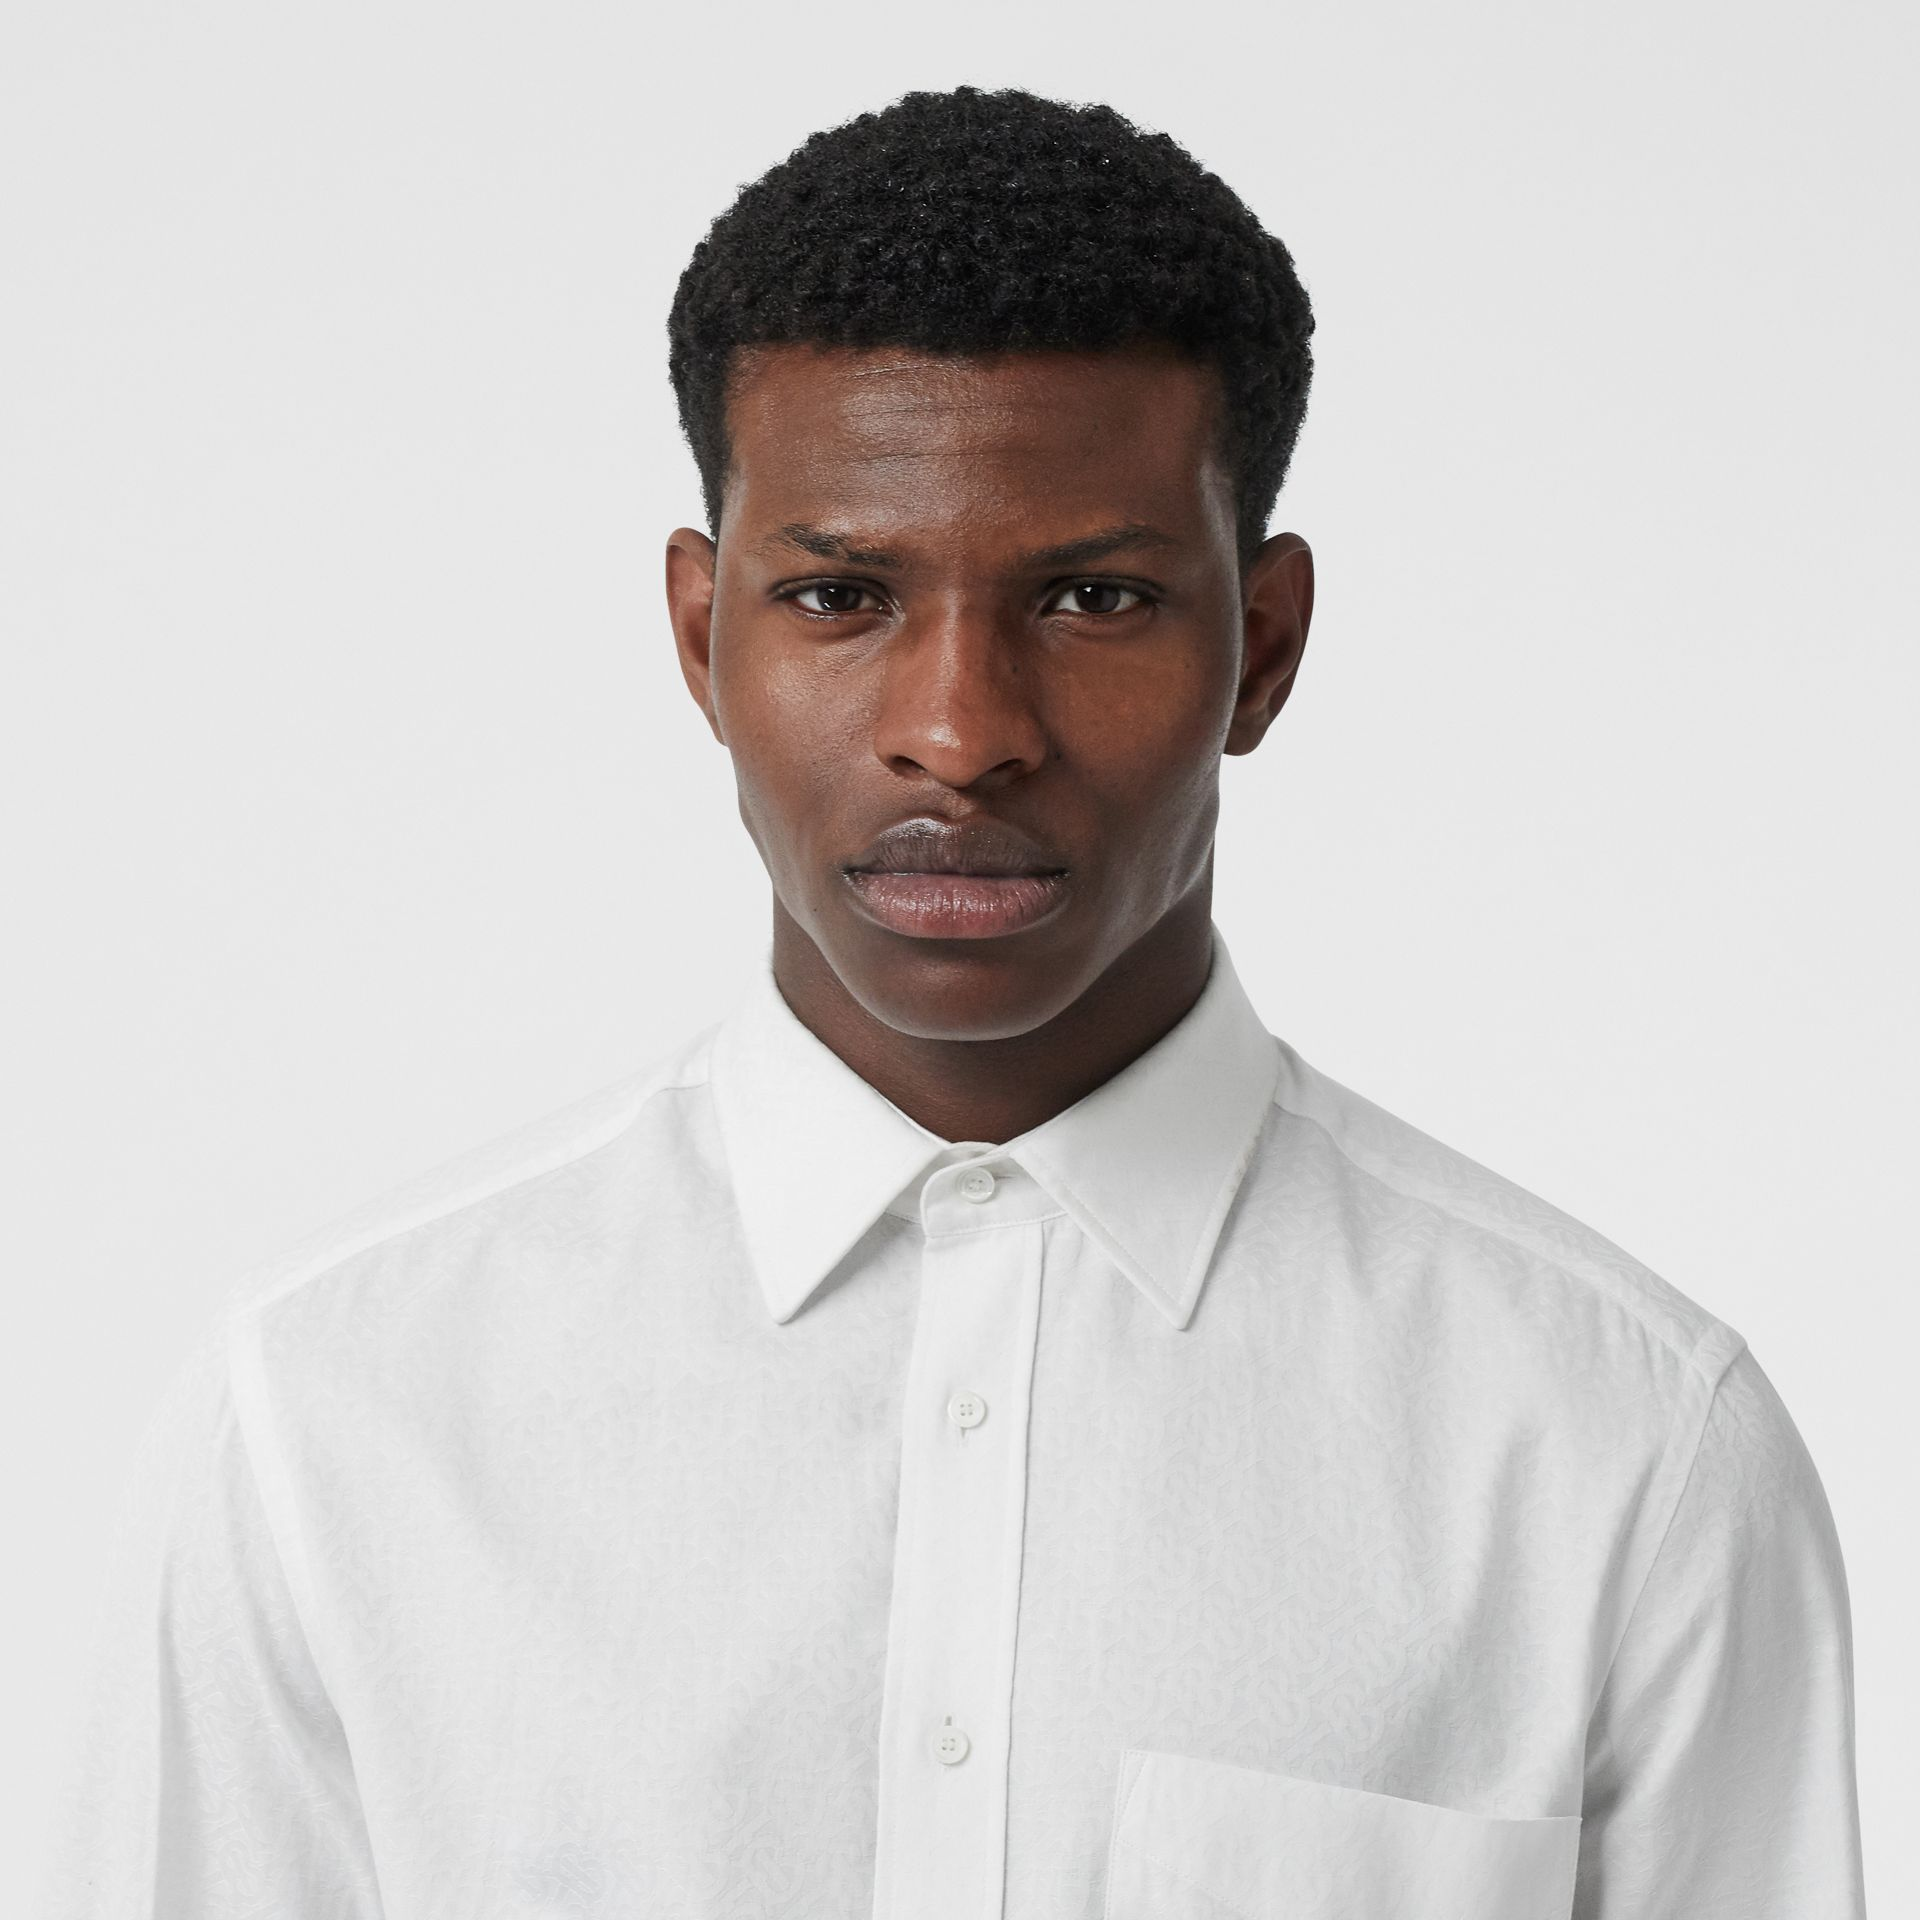 Classic Fit Monogram Cotton Jacquard Shirt in White - Men | Burberry Canada - gallery image 1